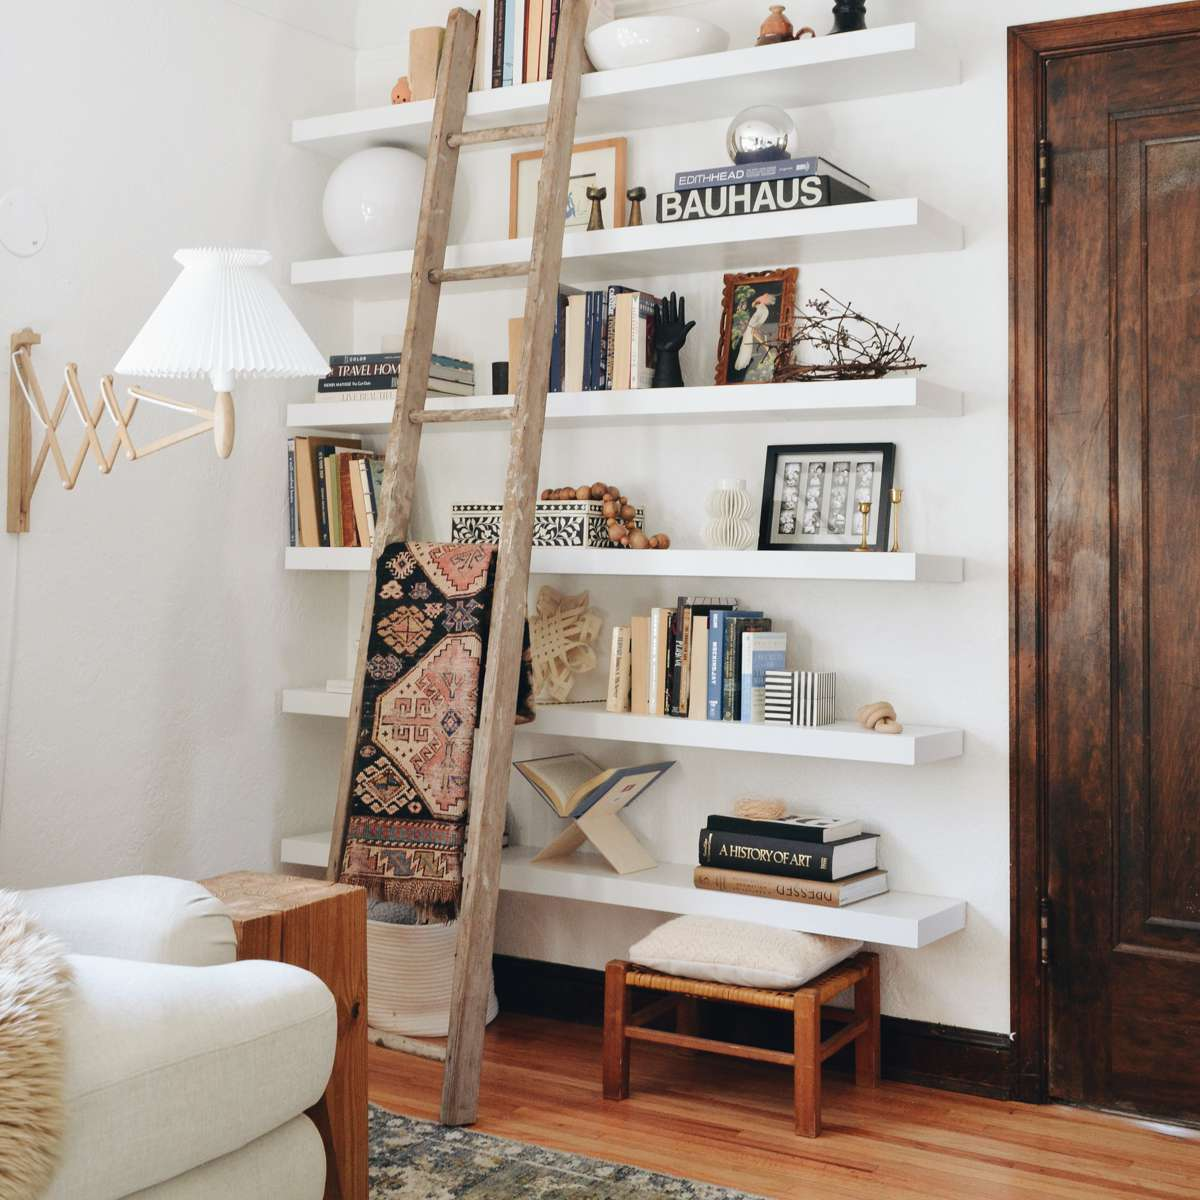 Home library wall with leaning ladder.